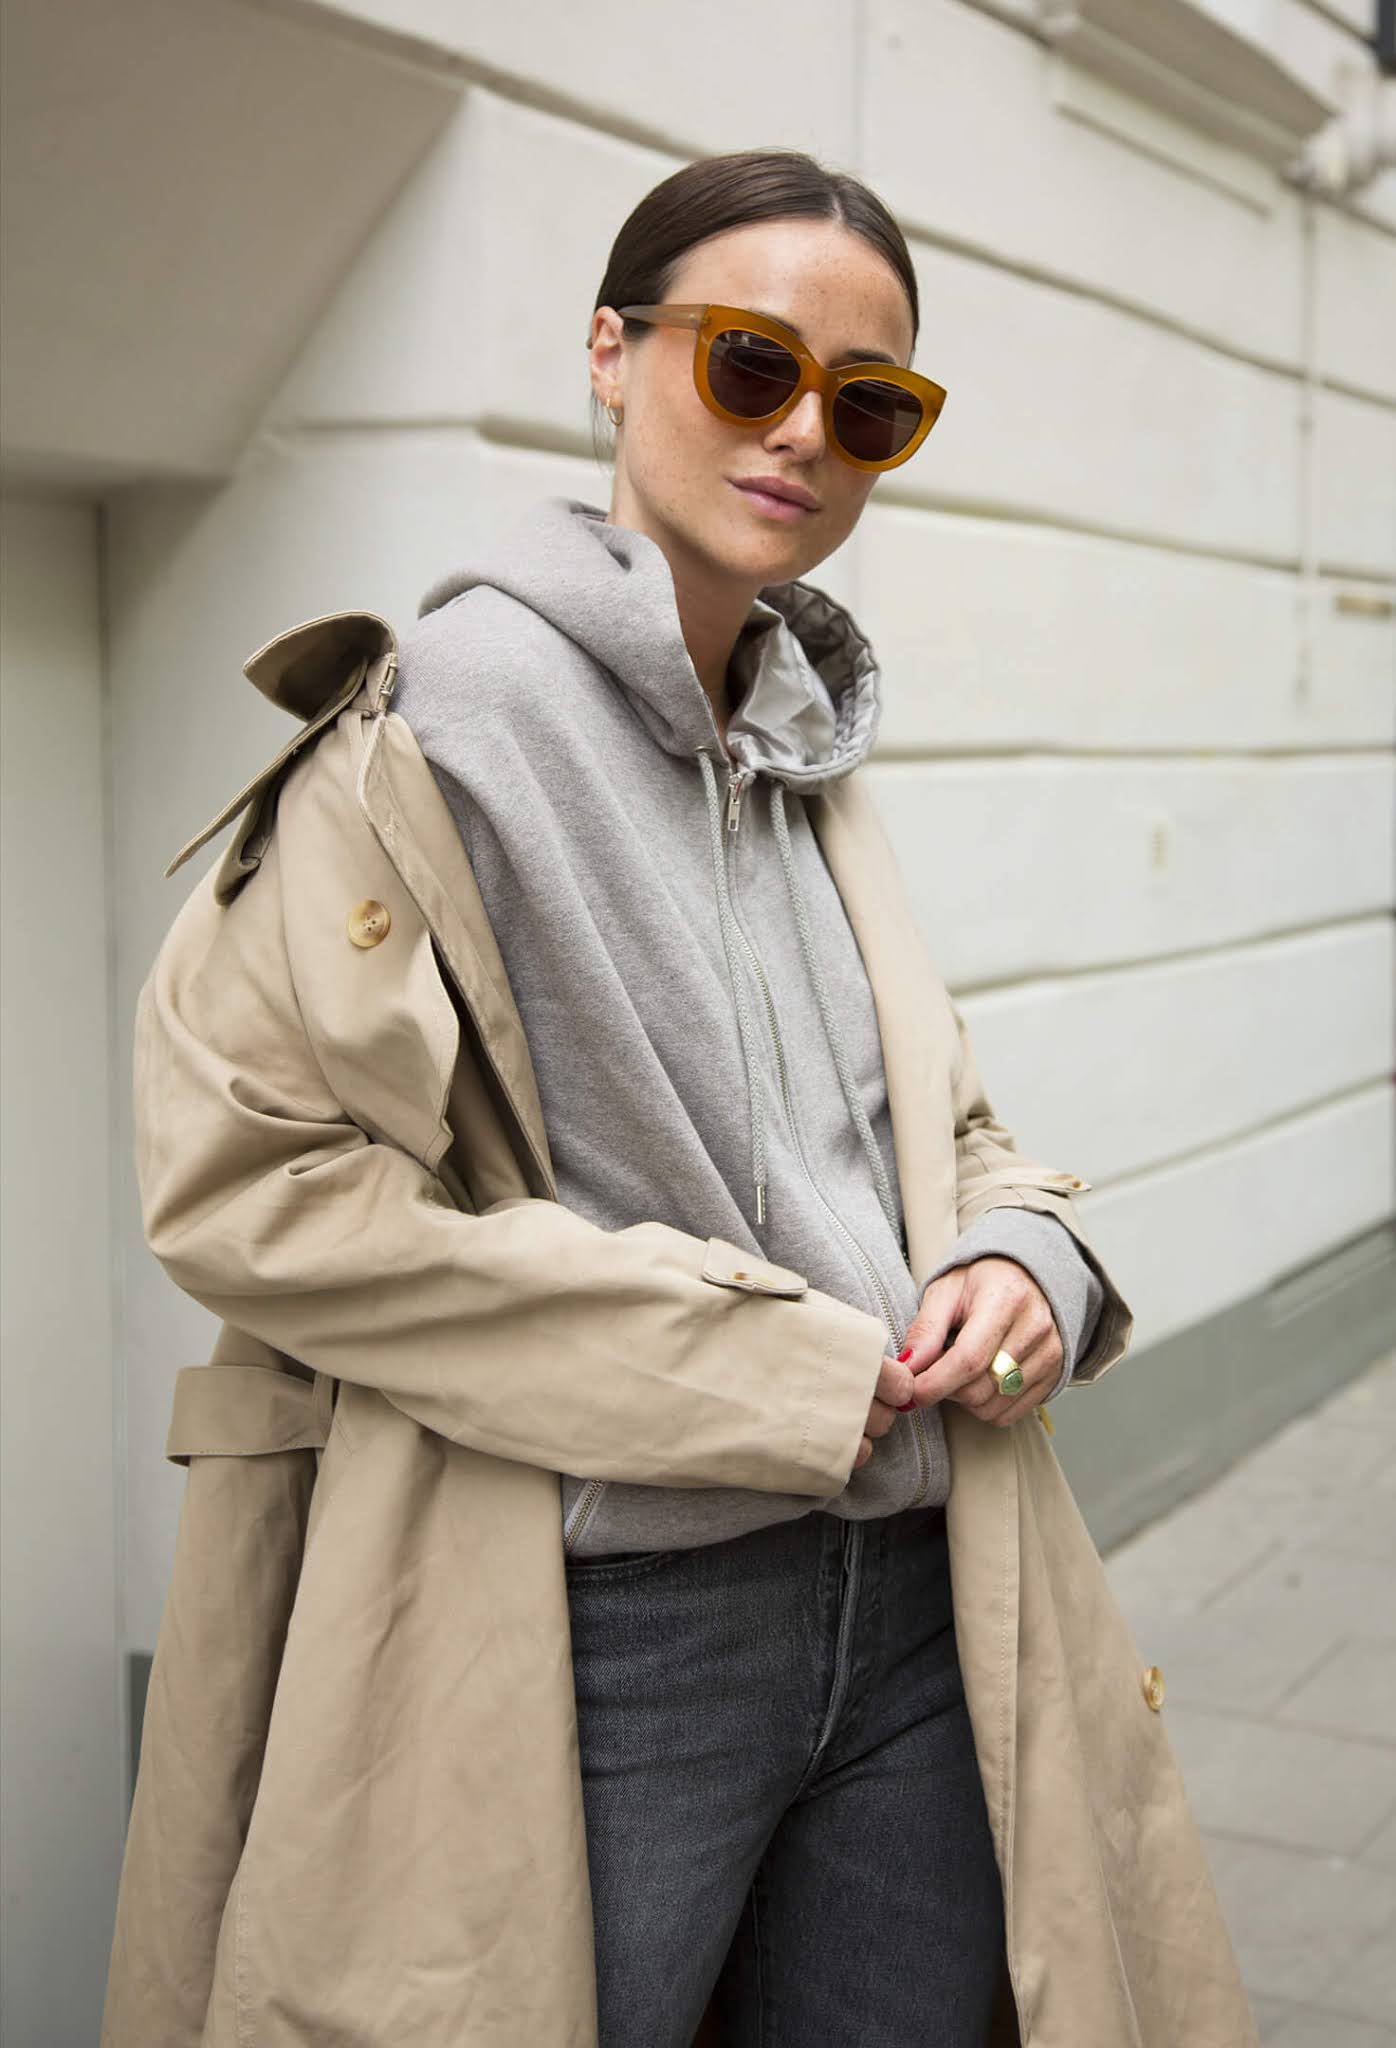 A Hoodie and Trench Coat Make for the Perfect Spring Outfit Combo — Lena Lademann in a classic trench coat, gray hooded sweatershirt, and faded black jeans